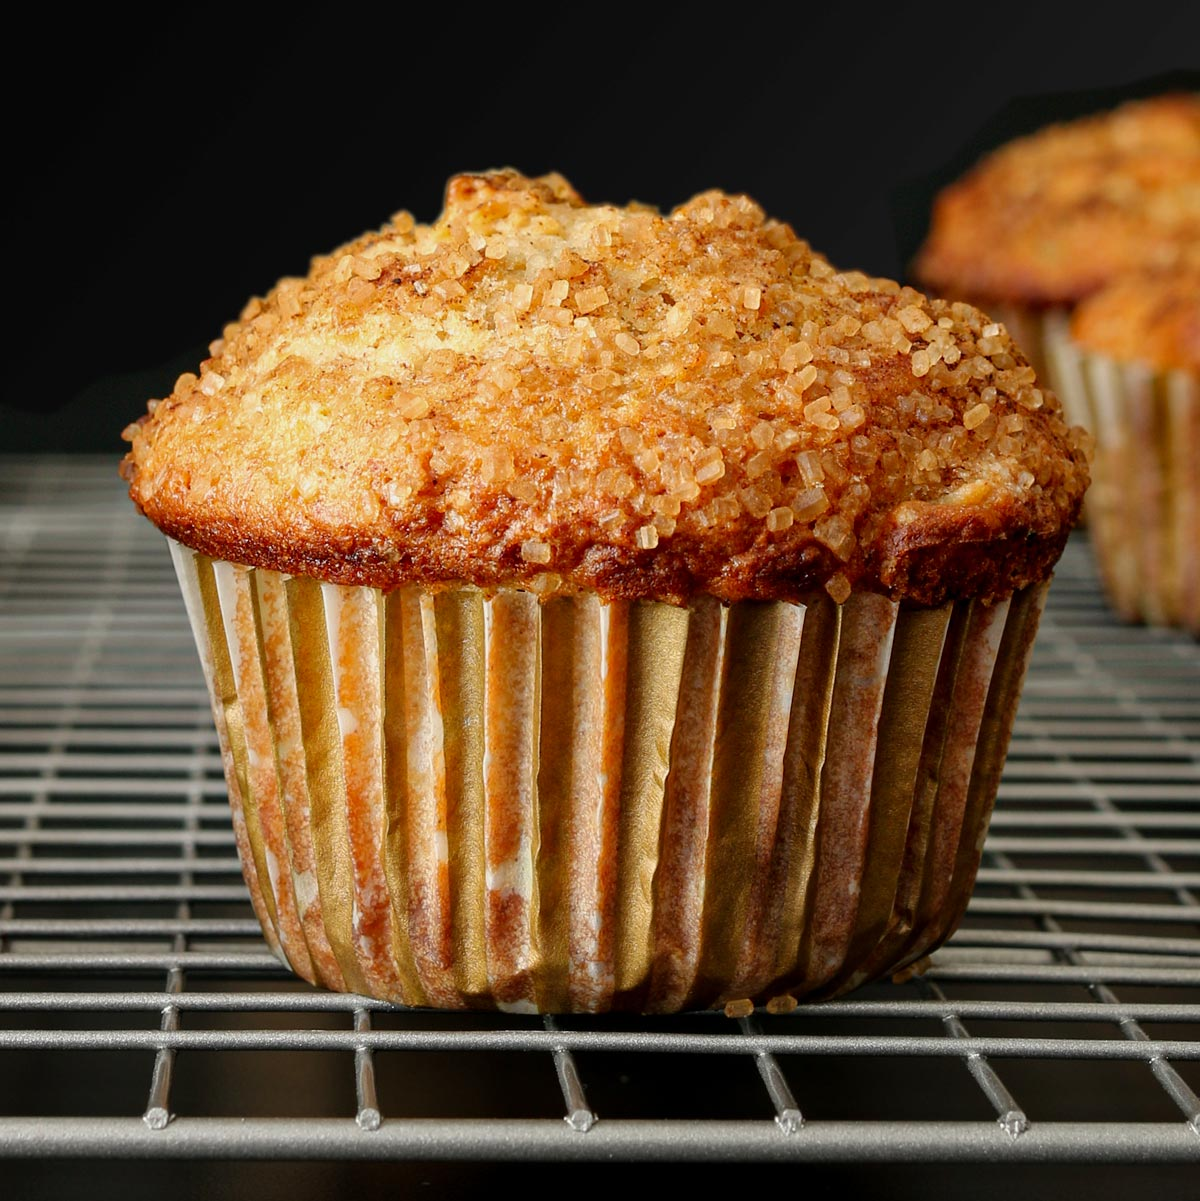 close up of apple cinnamon muffin in striped paper cooling on silver wire rack on black table.